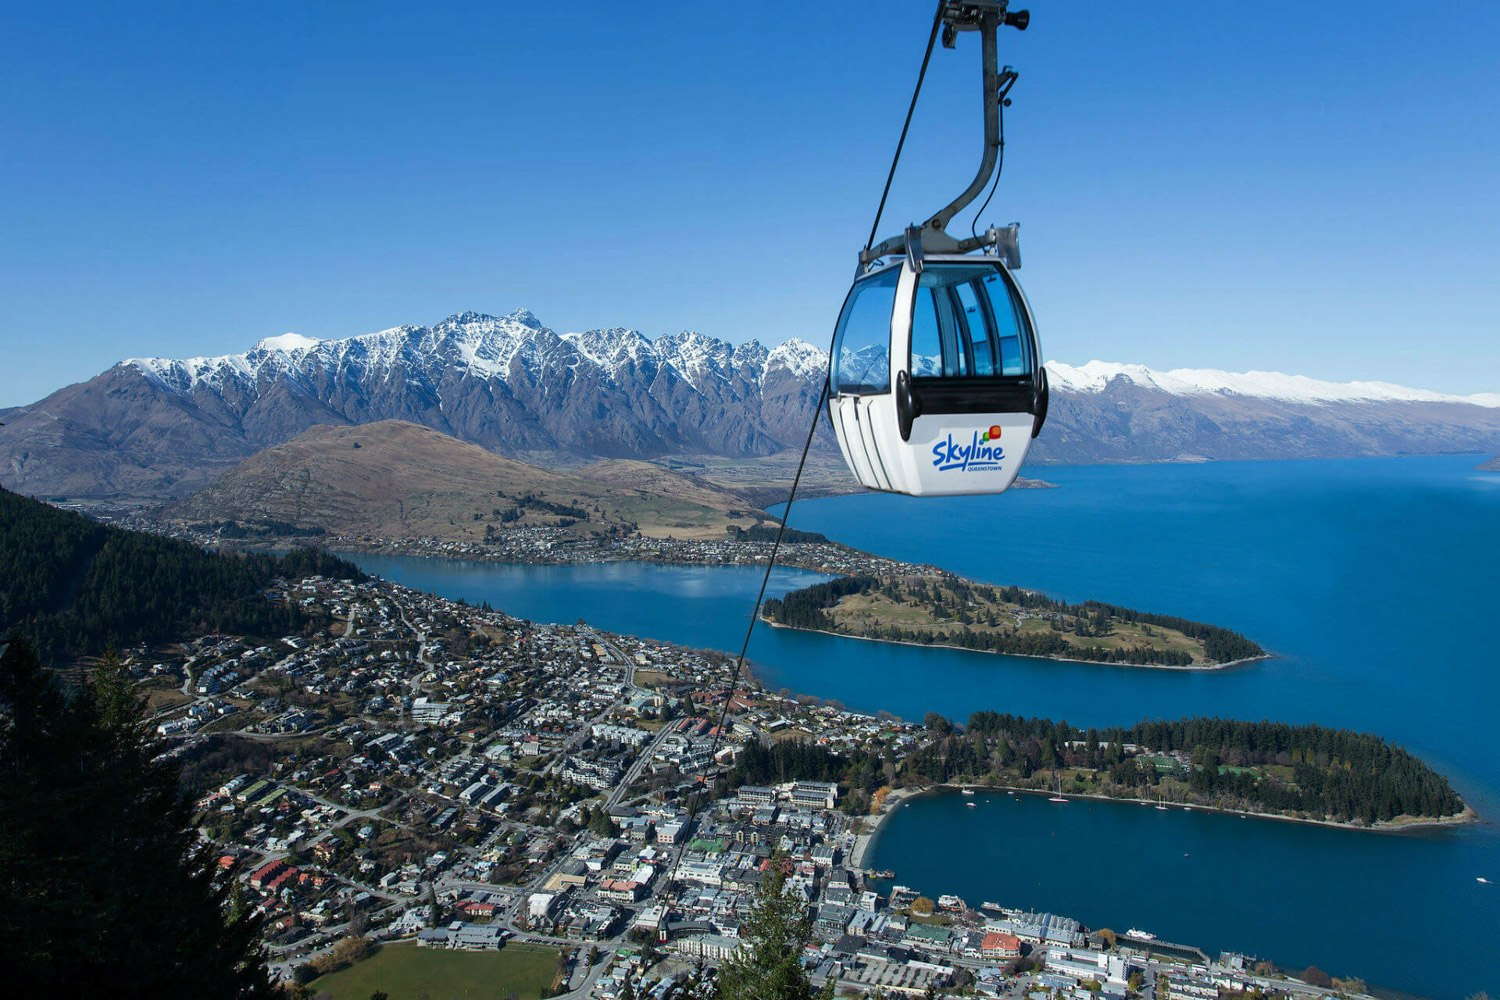 Gondola in Queenstown